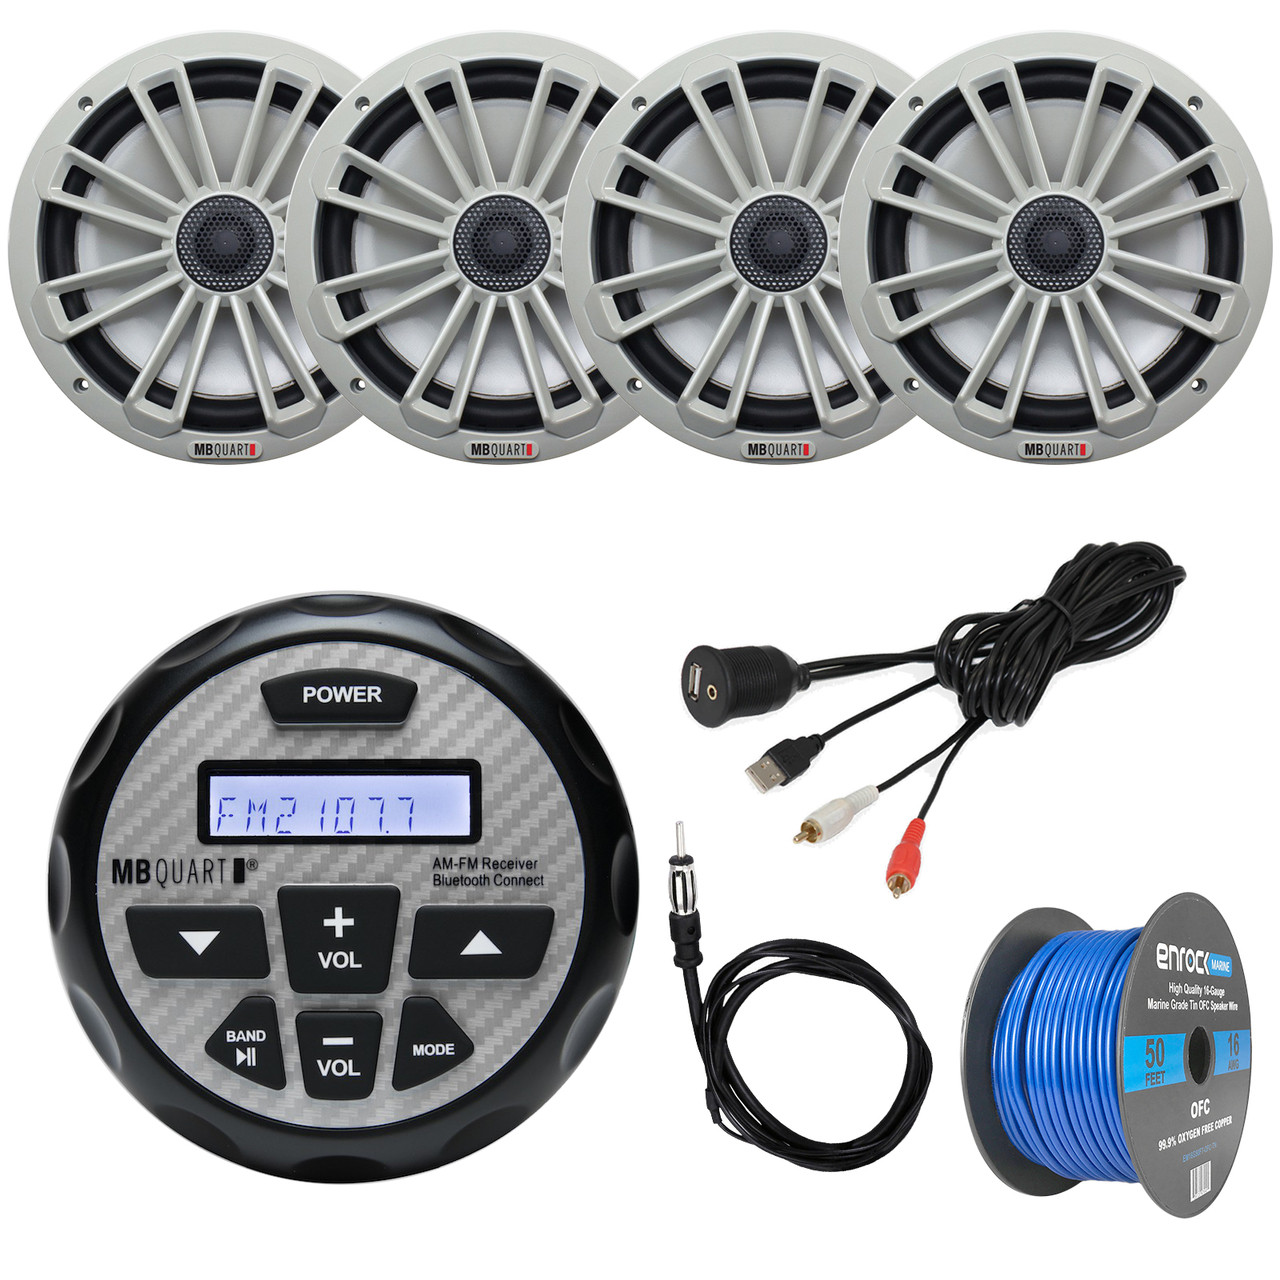 small resolution of bay boat audio package mb quart gmr 2 5 waterproof am fm bluetooth gauge source unit receiver 2x 8 2 way coaxial marine speakers pair silver